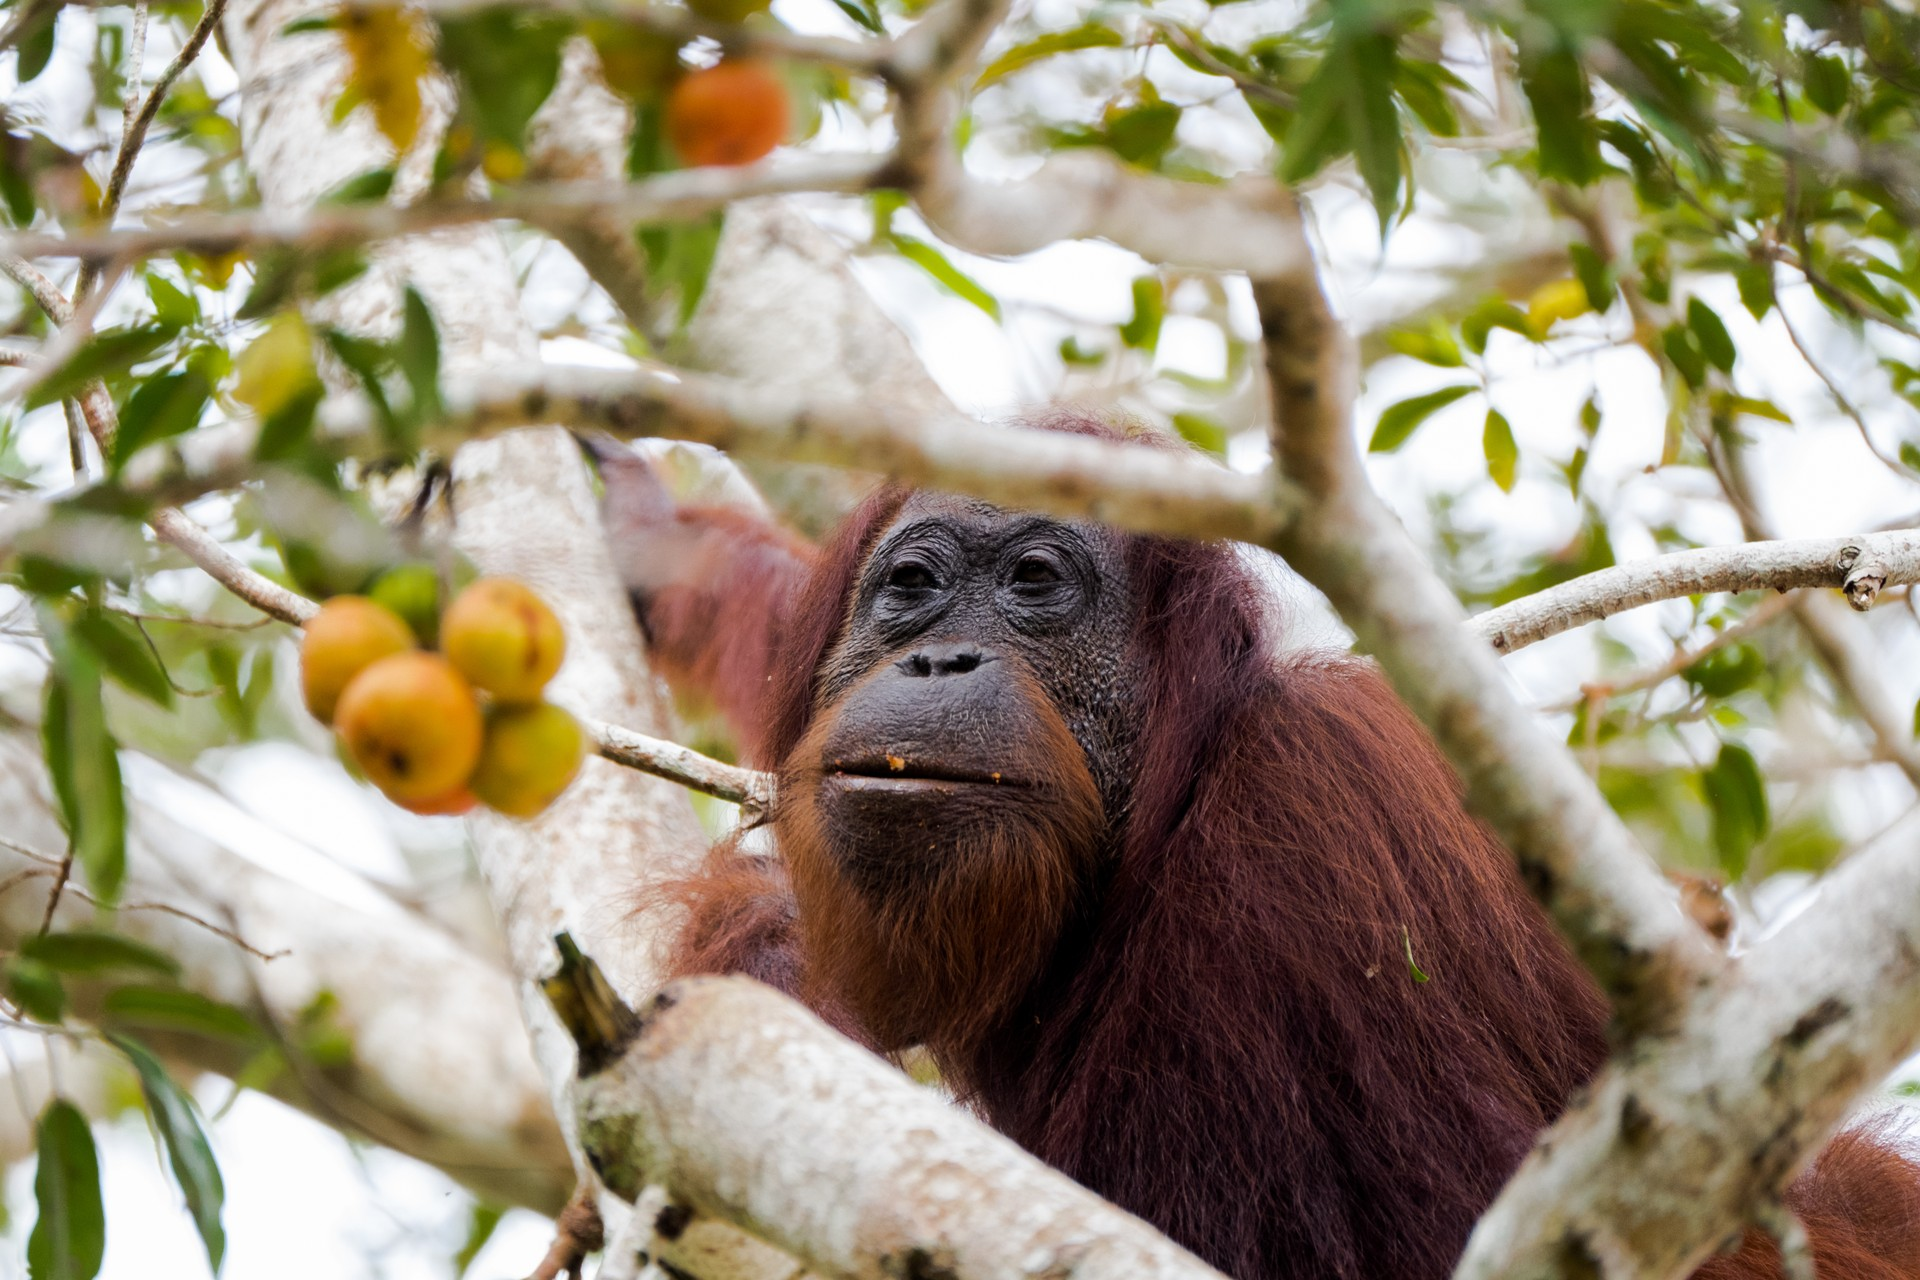 Borneo holidays: Orangutan in fig tree